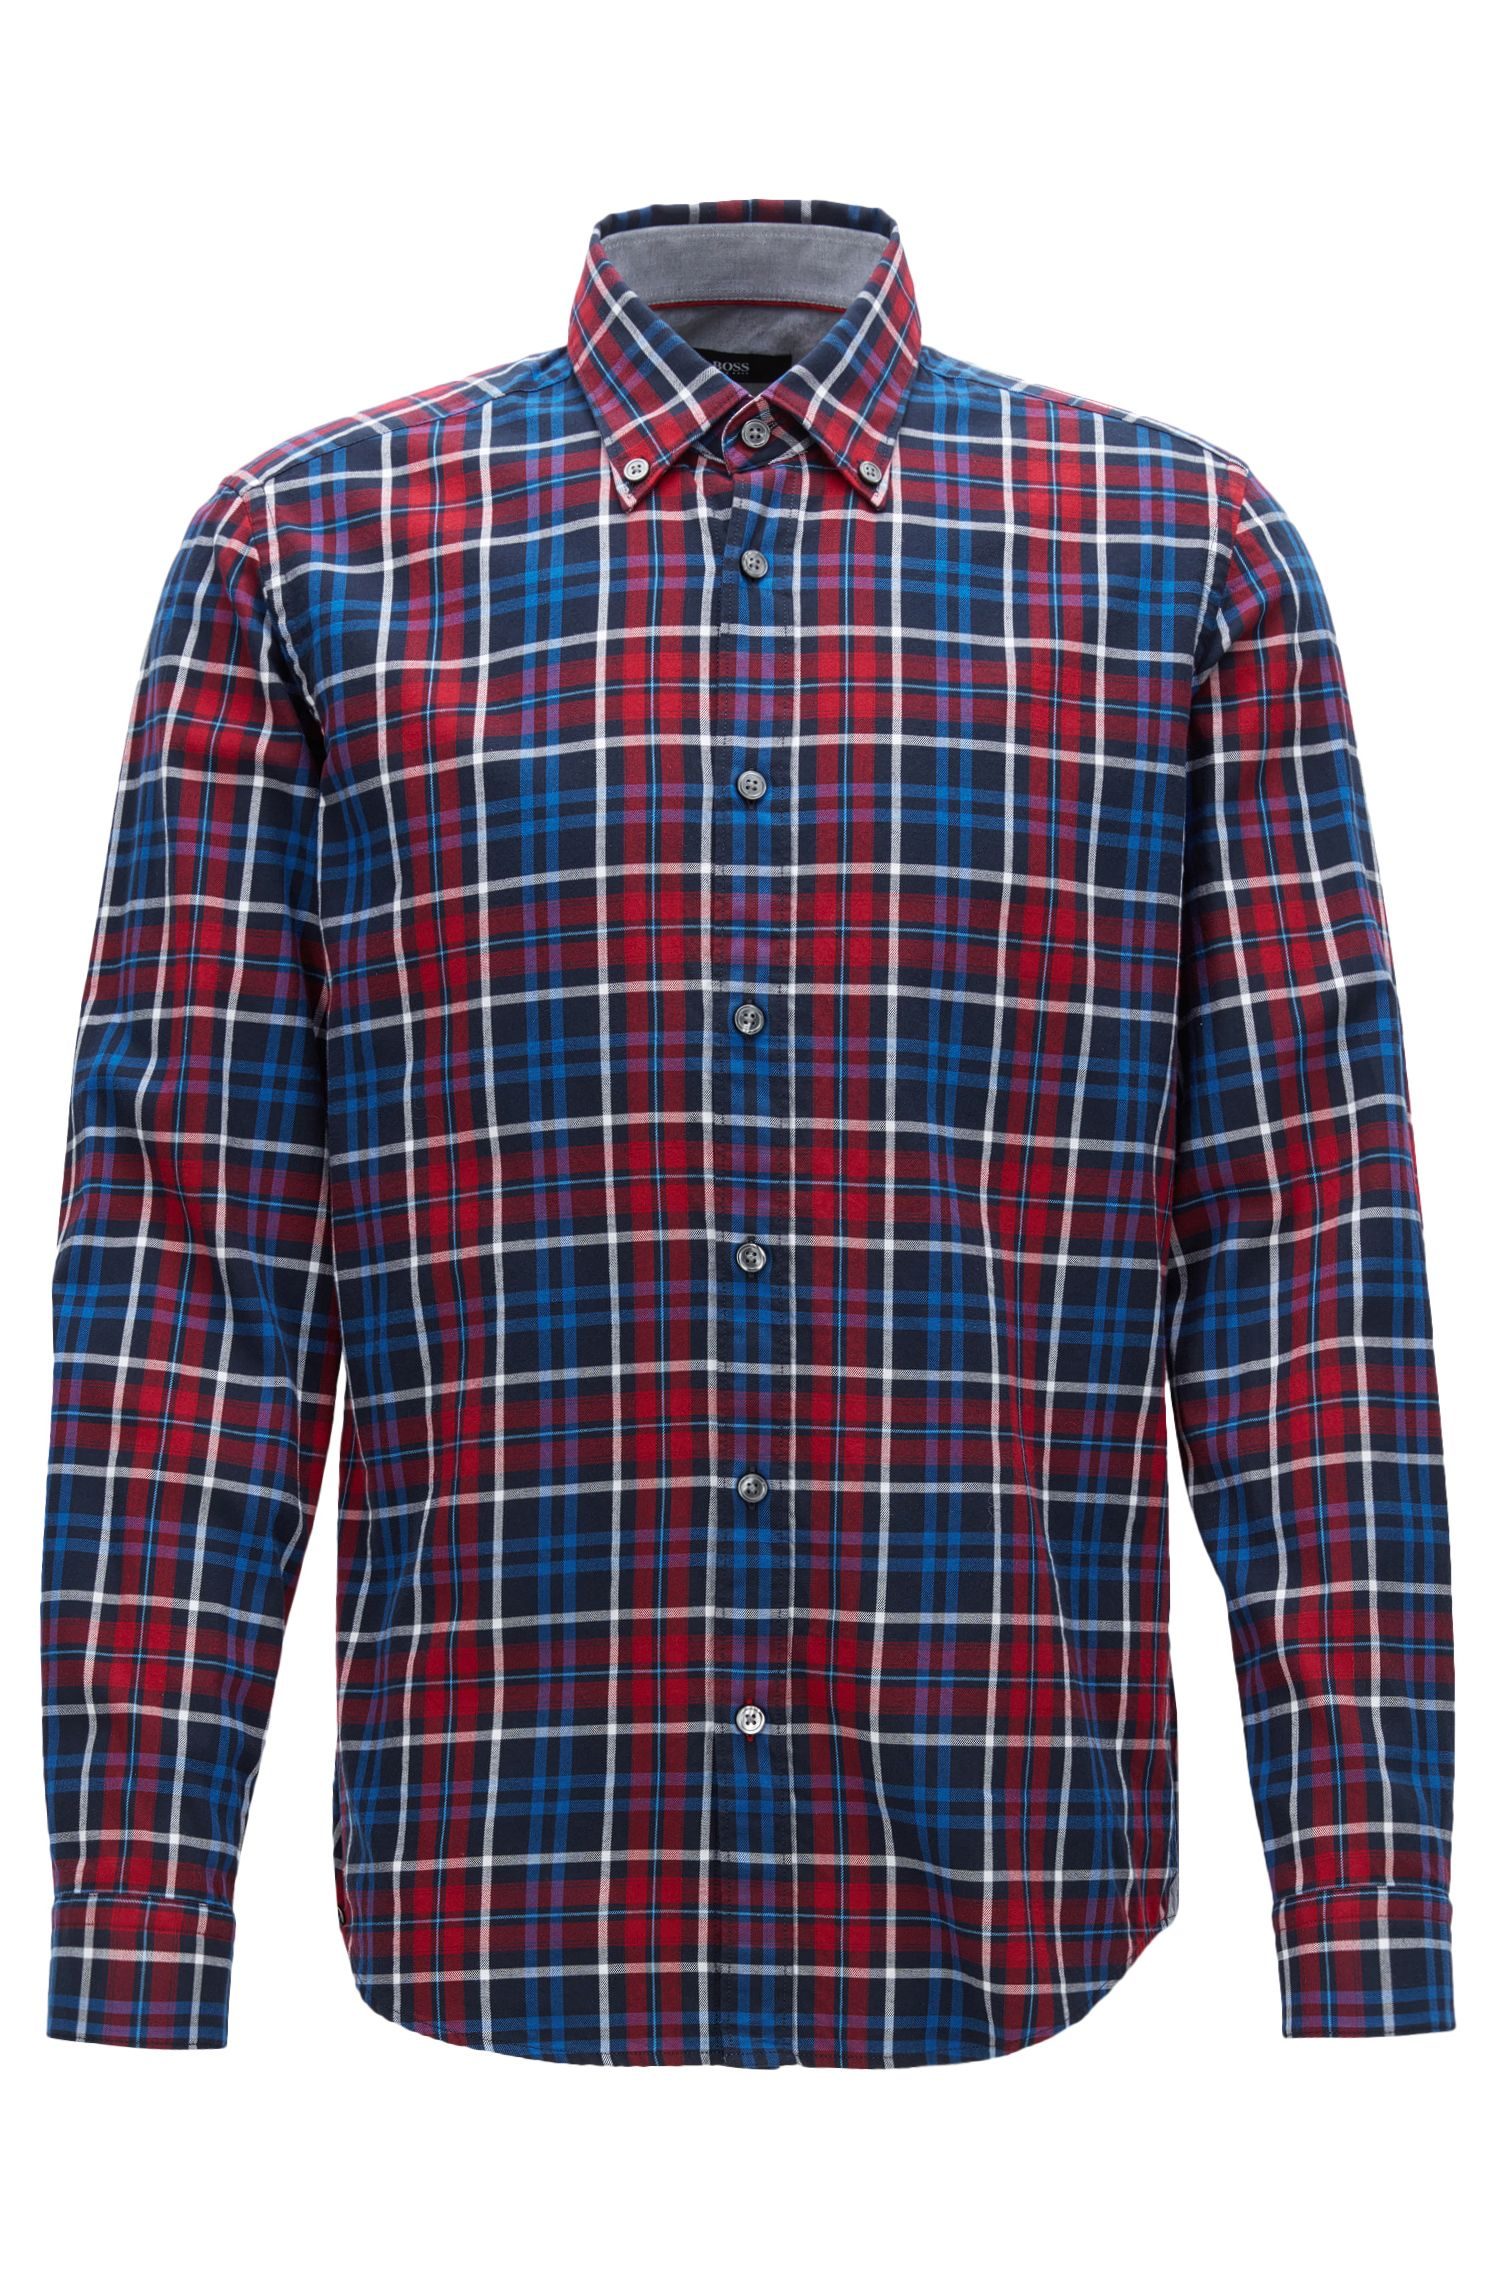 Plaid Cotton Button Down Shirt, Regular Fit | Lod